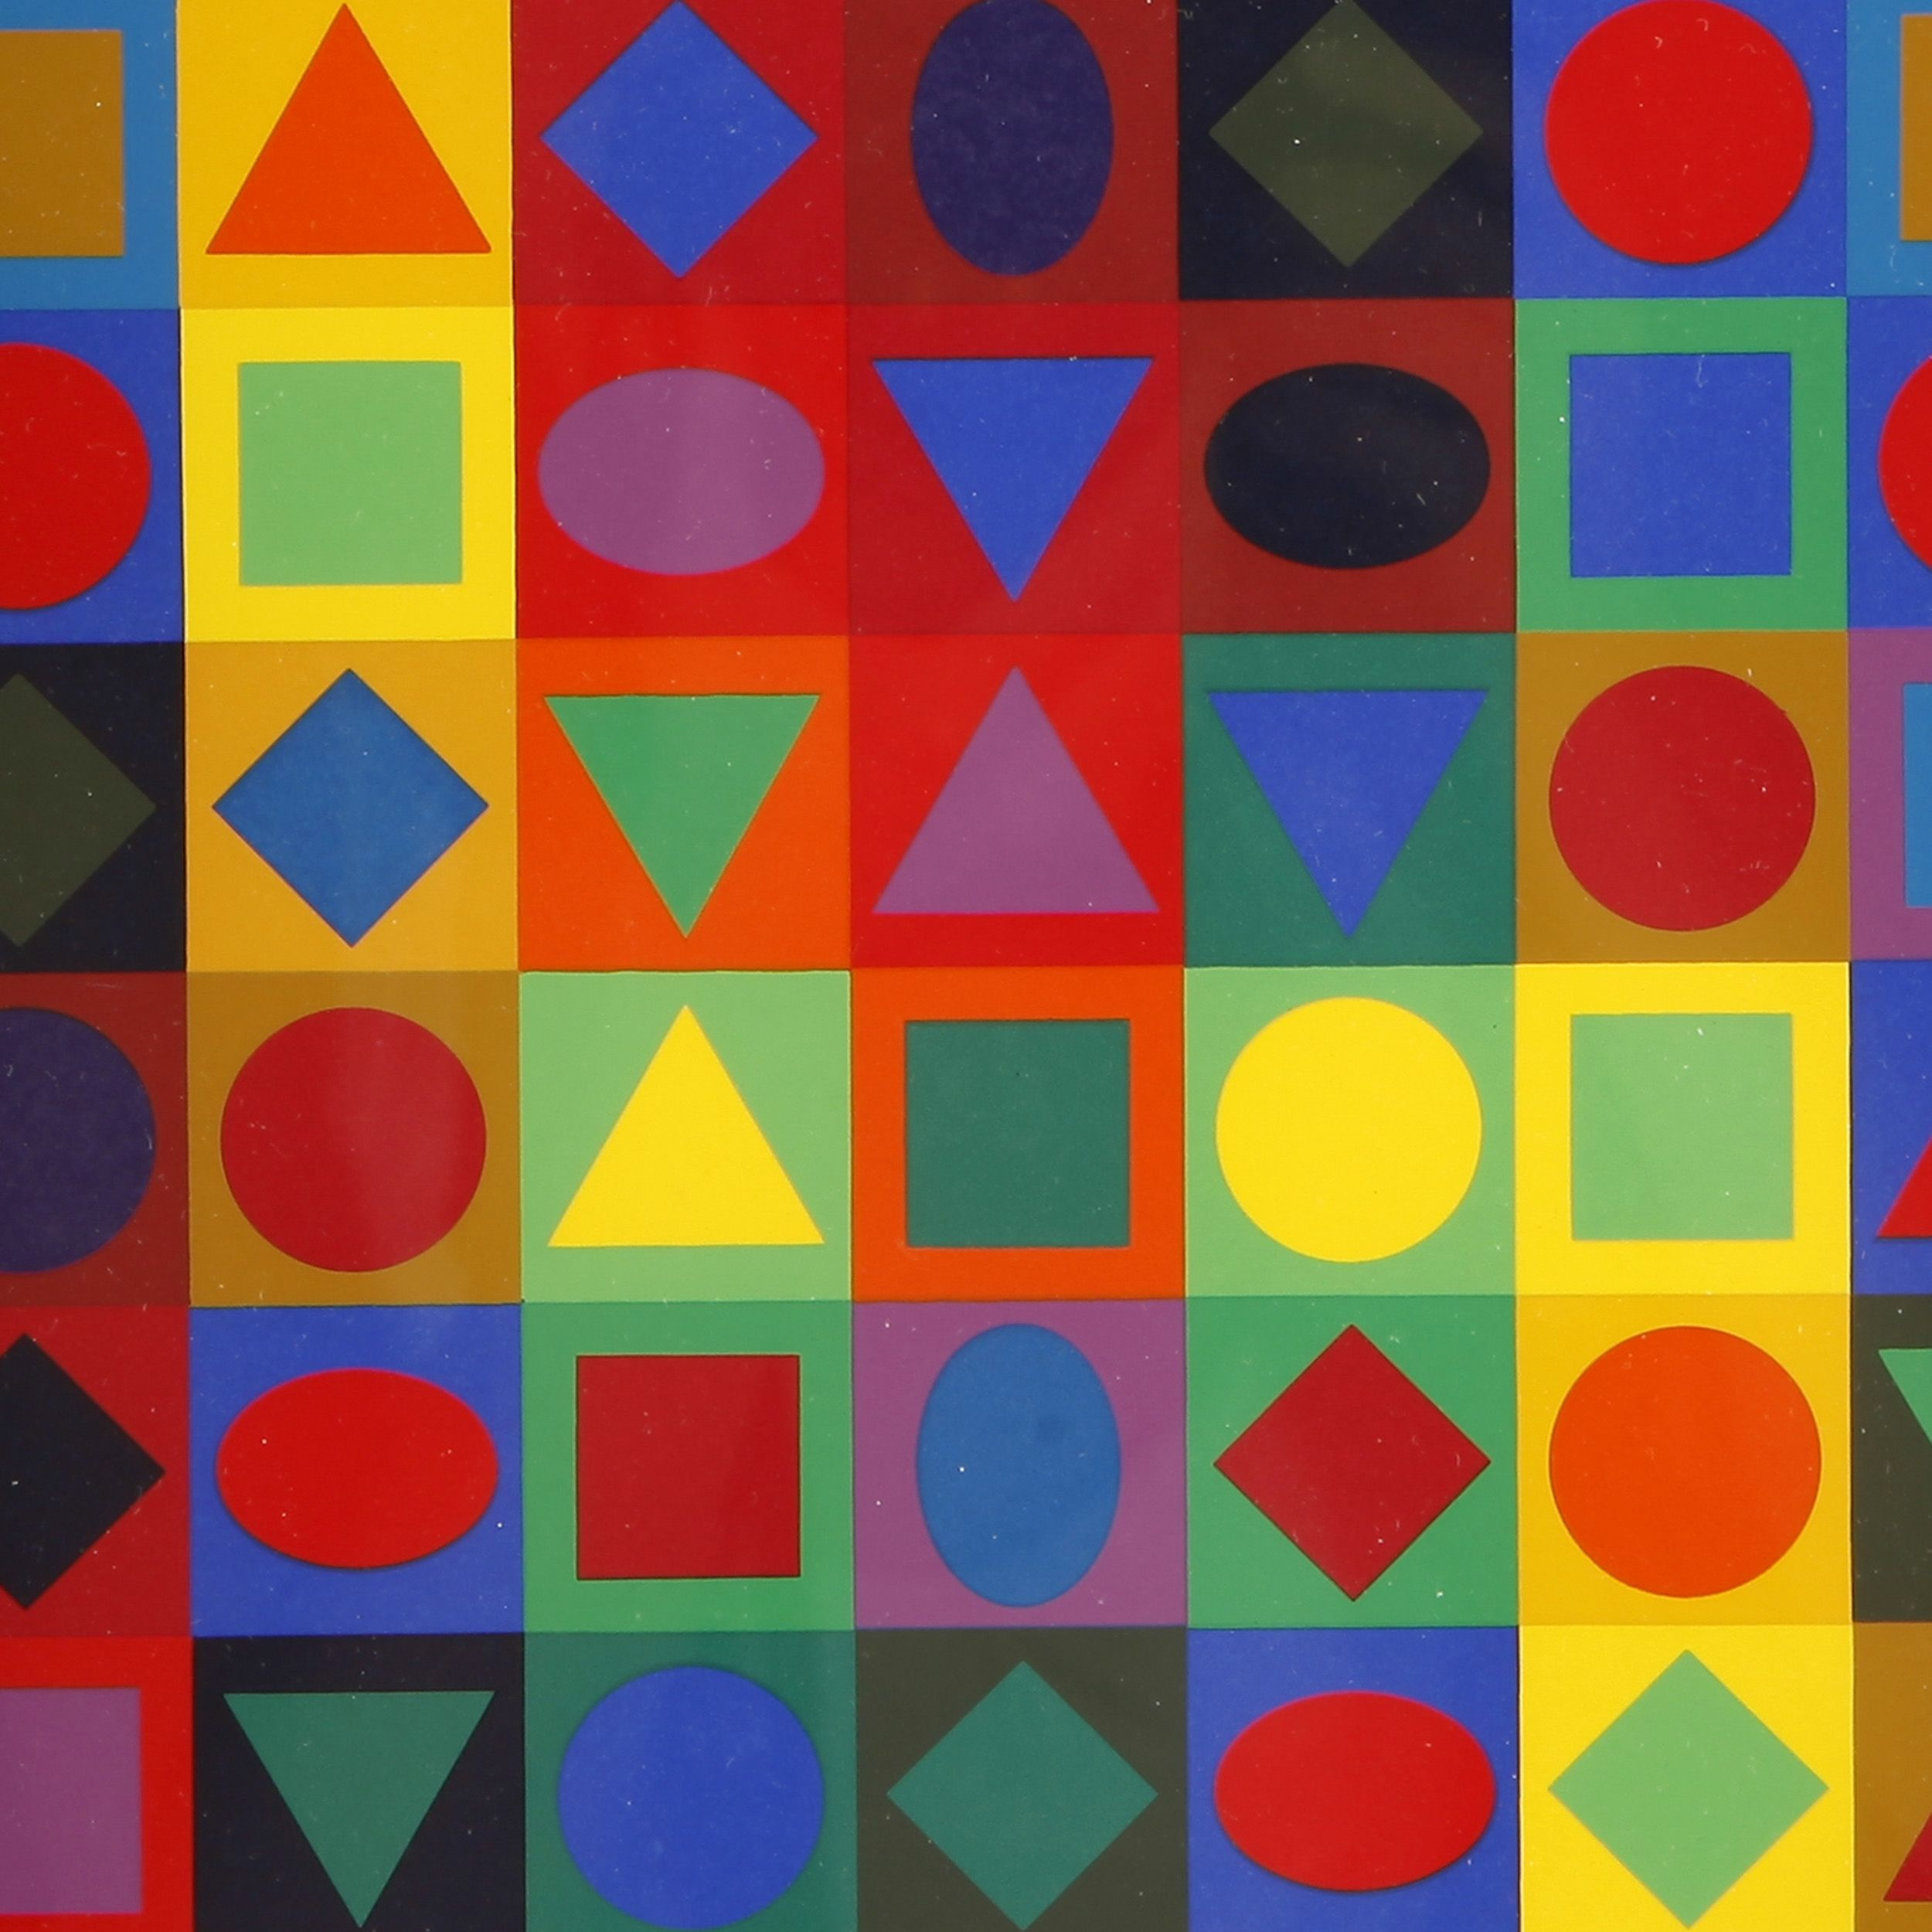 Planetary Folklore (Victor Vasarely, 1969)